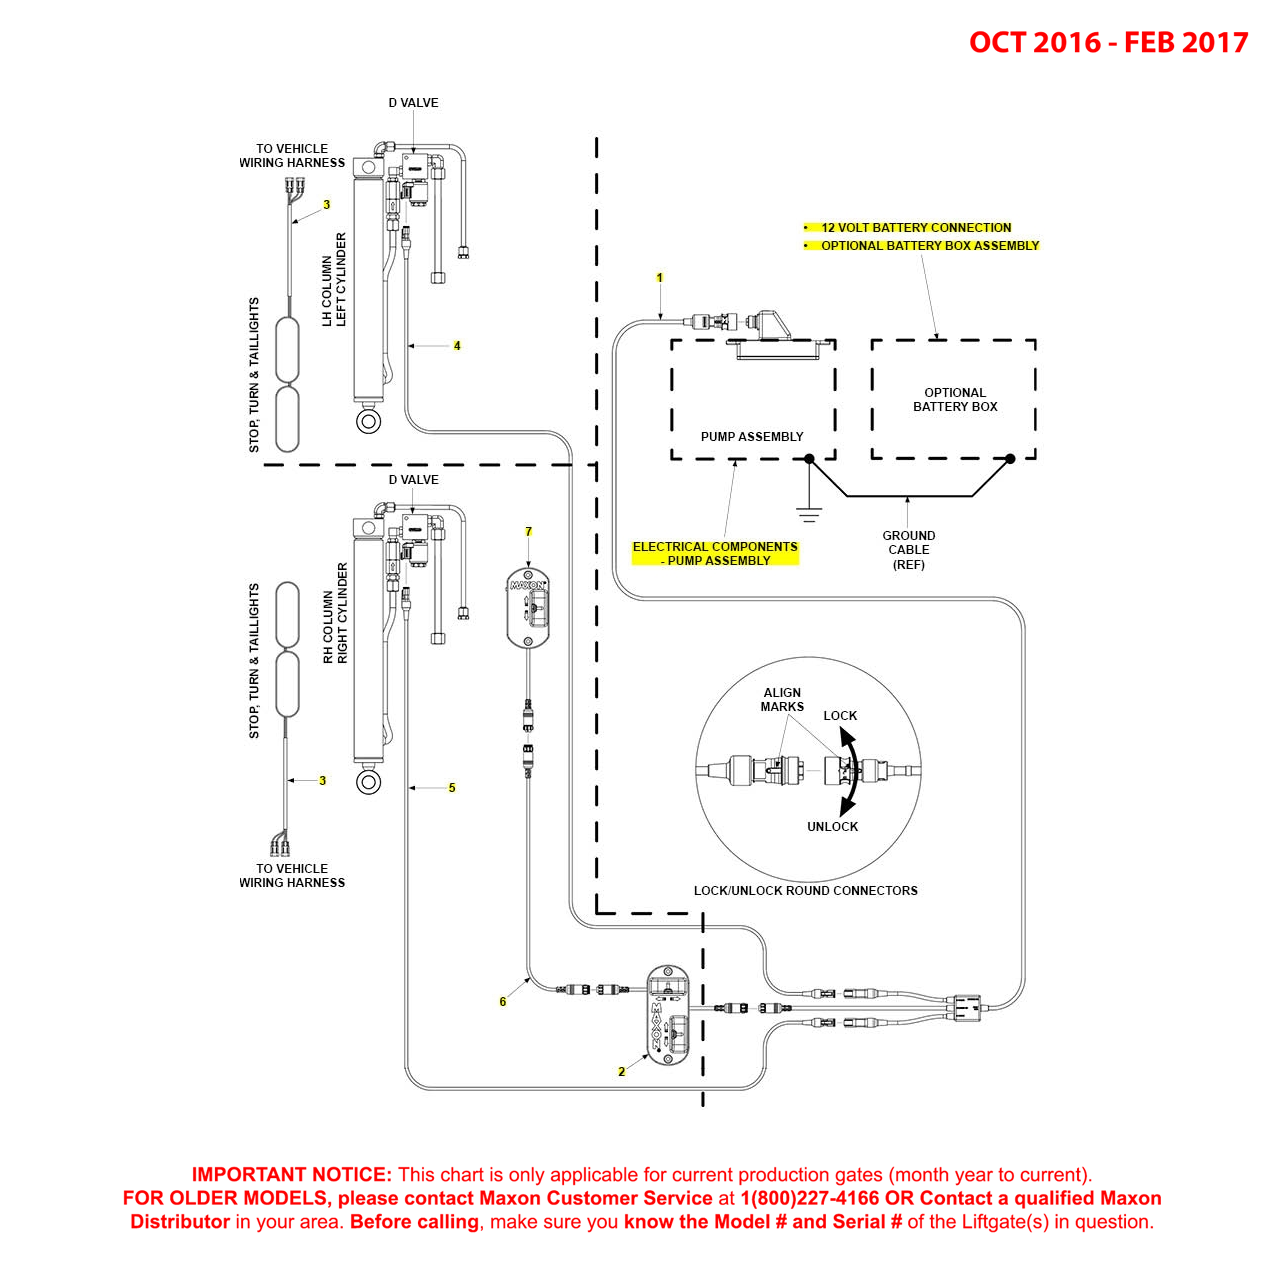 BMR (Oct 2016 - Feb 2017) MTE Hydraulics Electrical Systems Diagram